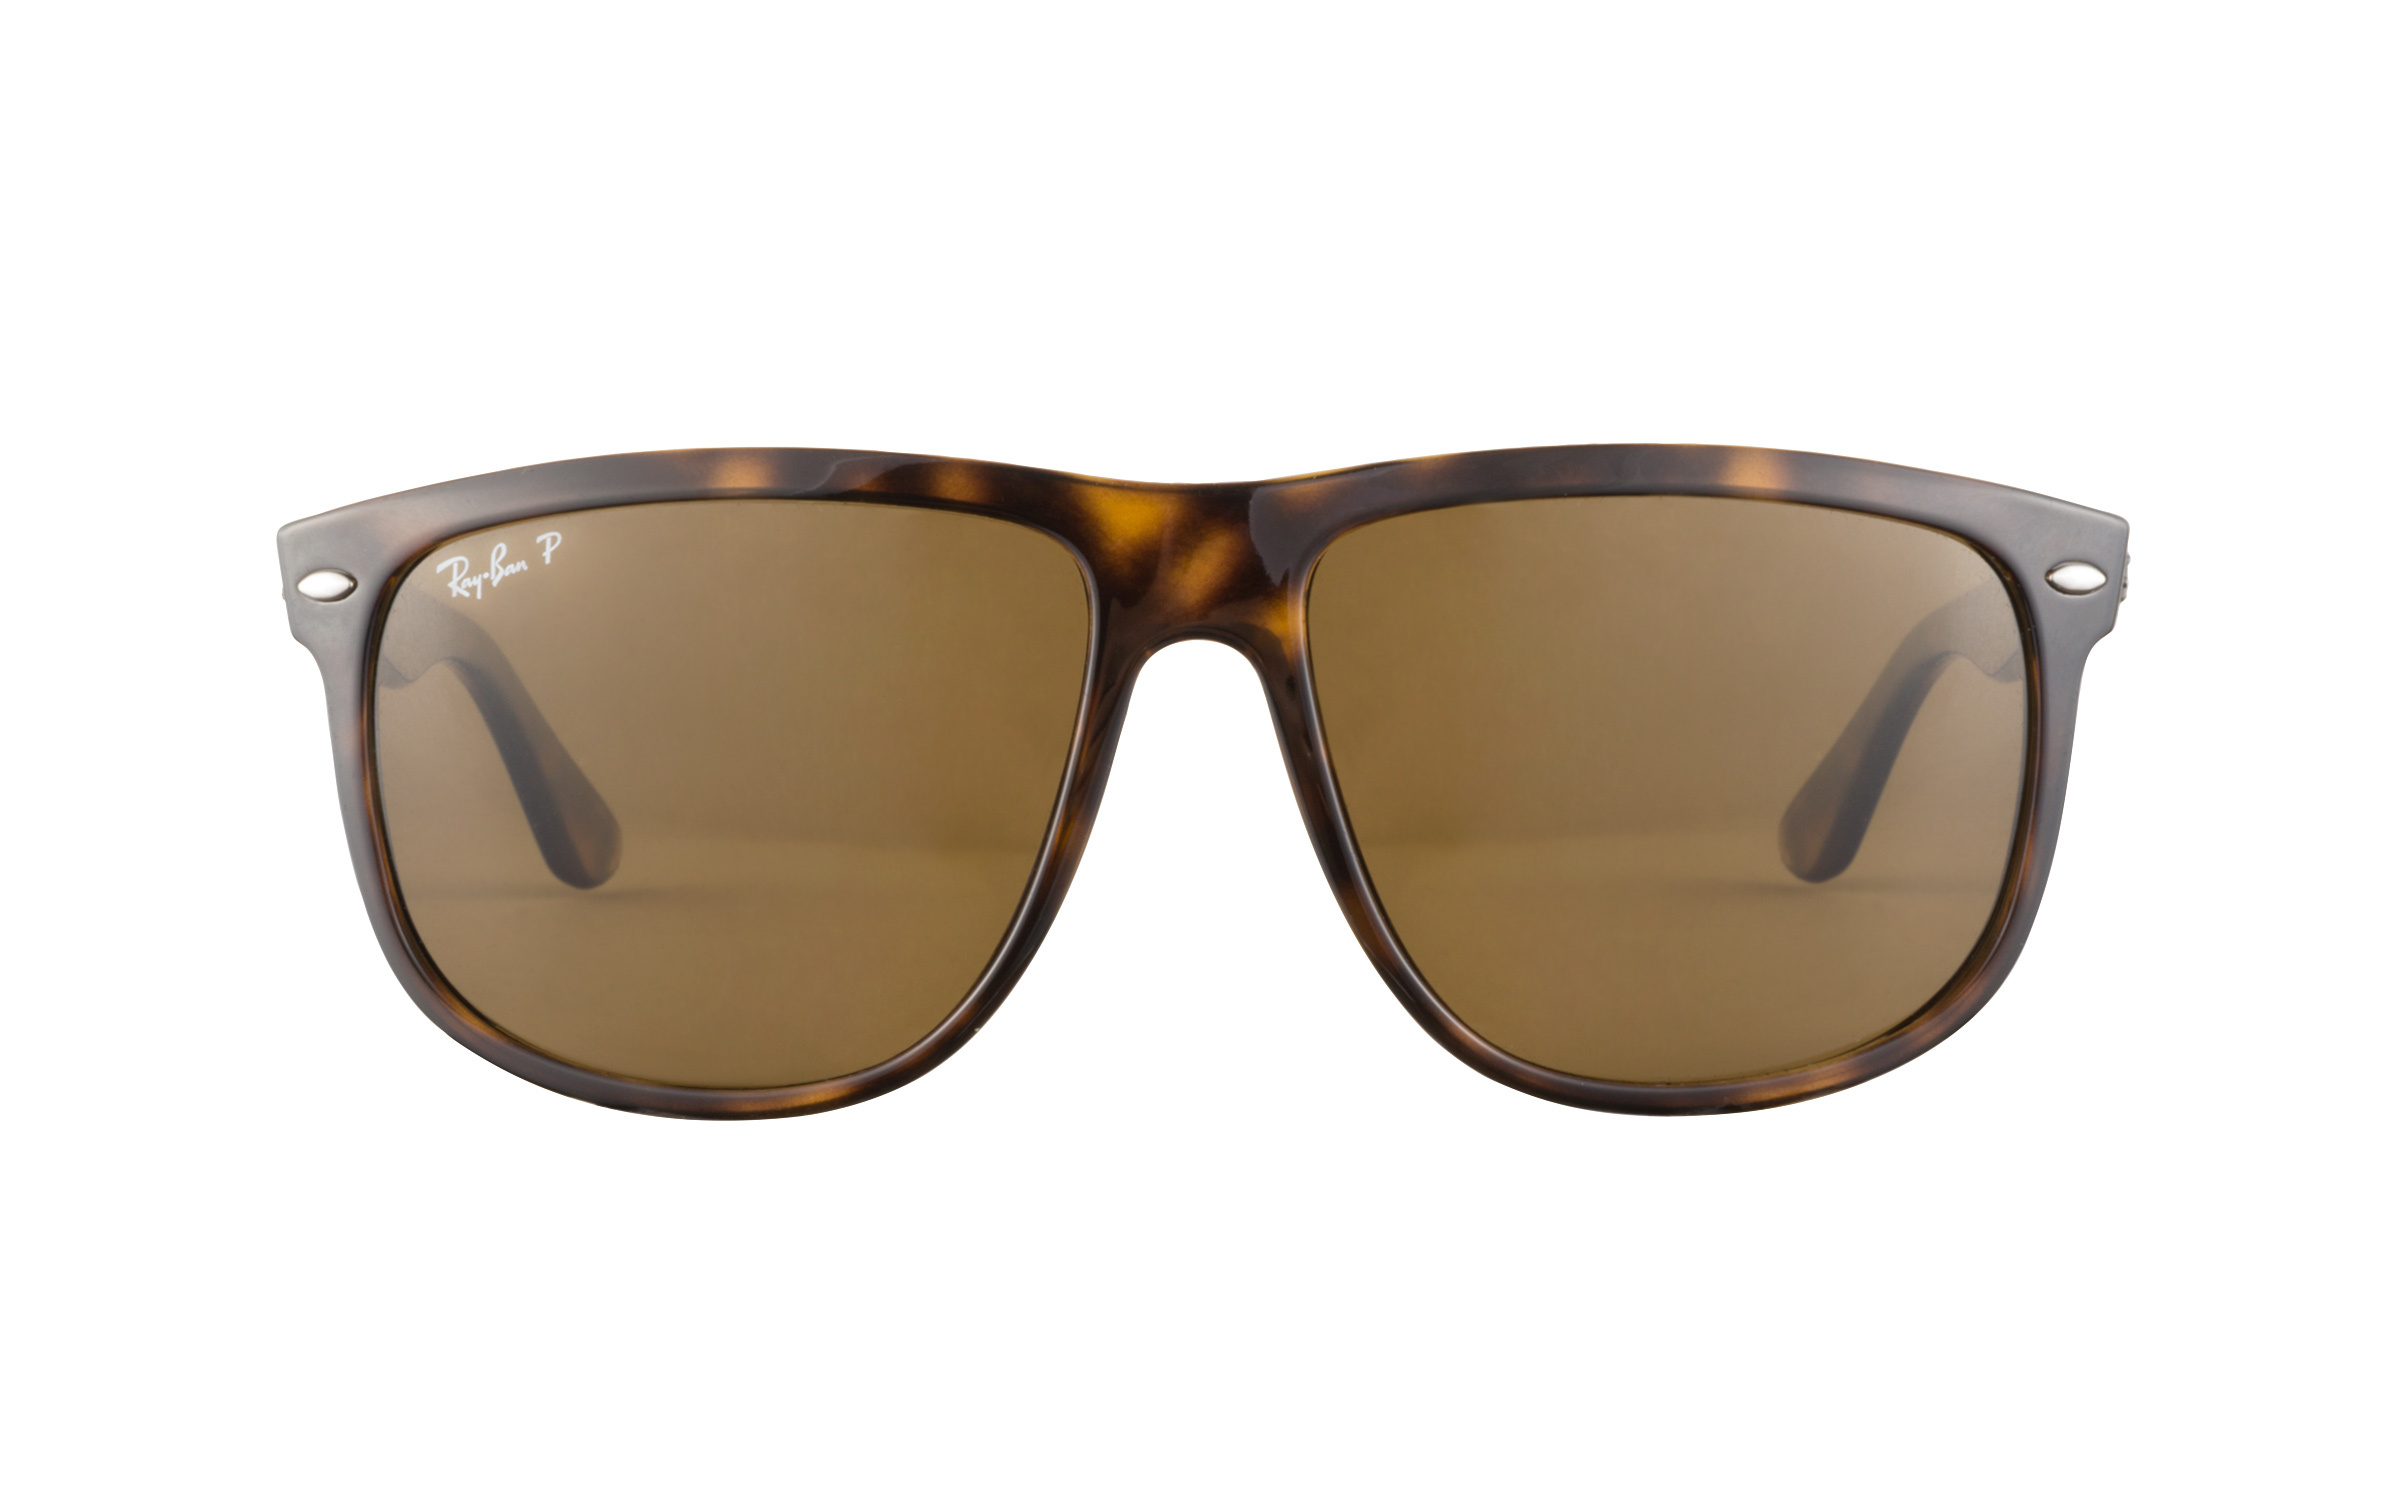 Rx Ray-Ban RB4147 710 57 60 Eyeglasses and Frame in Tortoise - Online Coastal